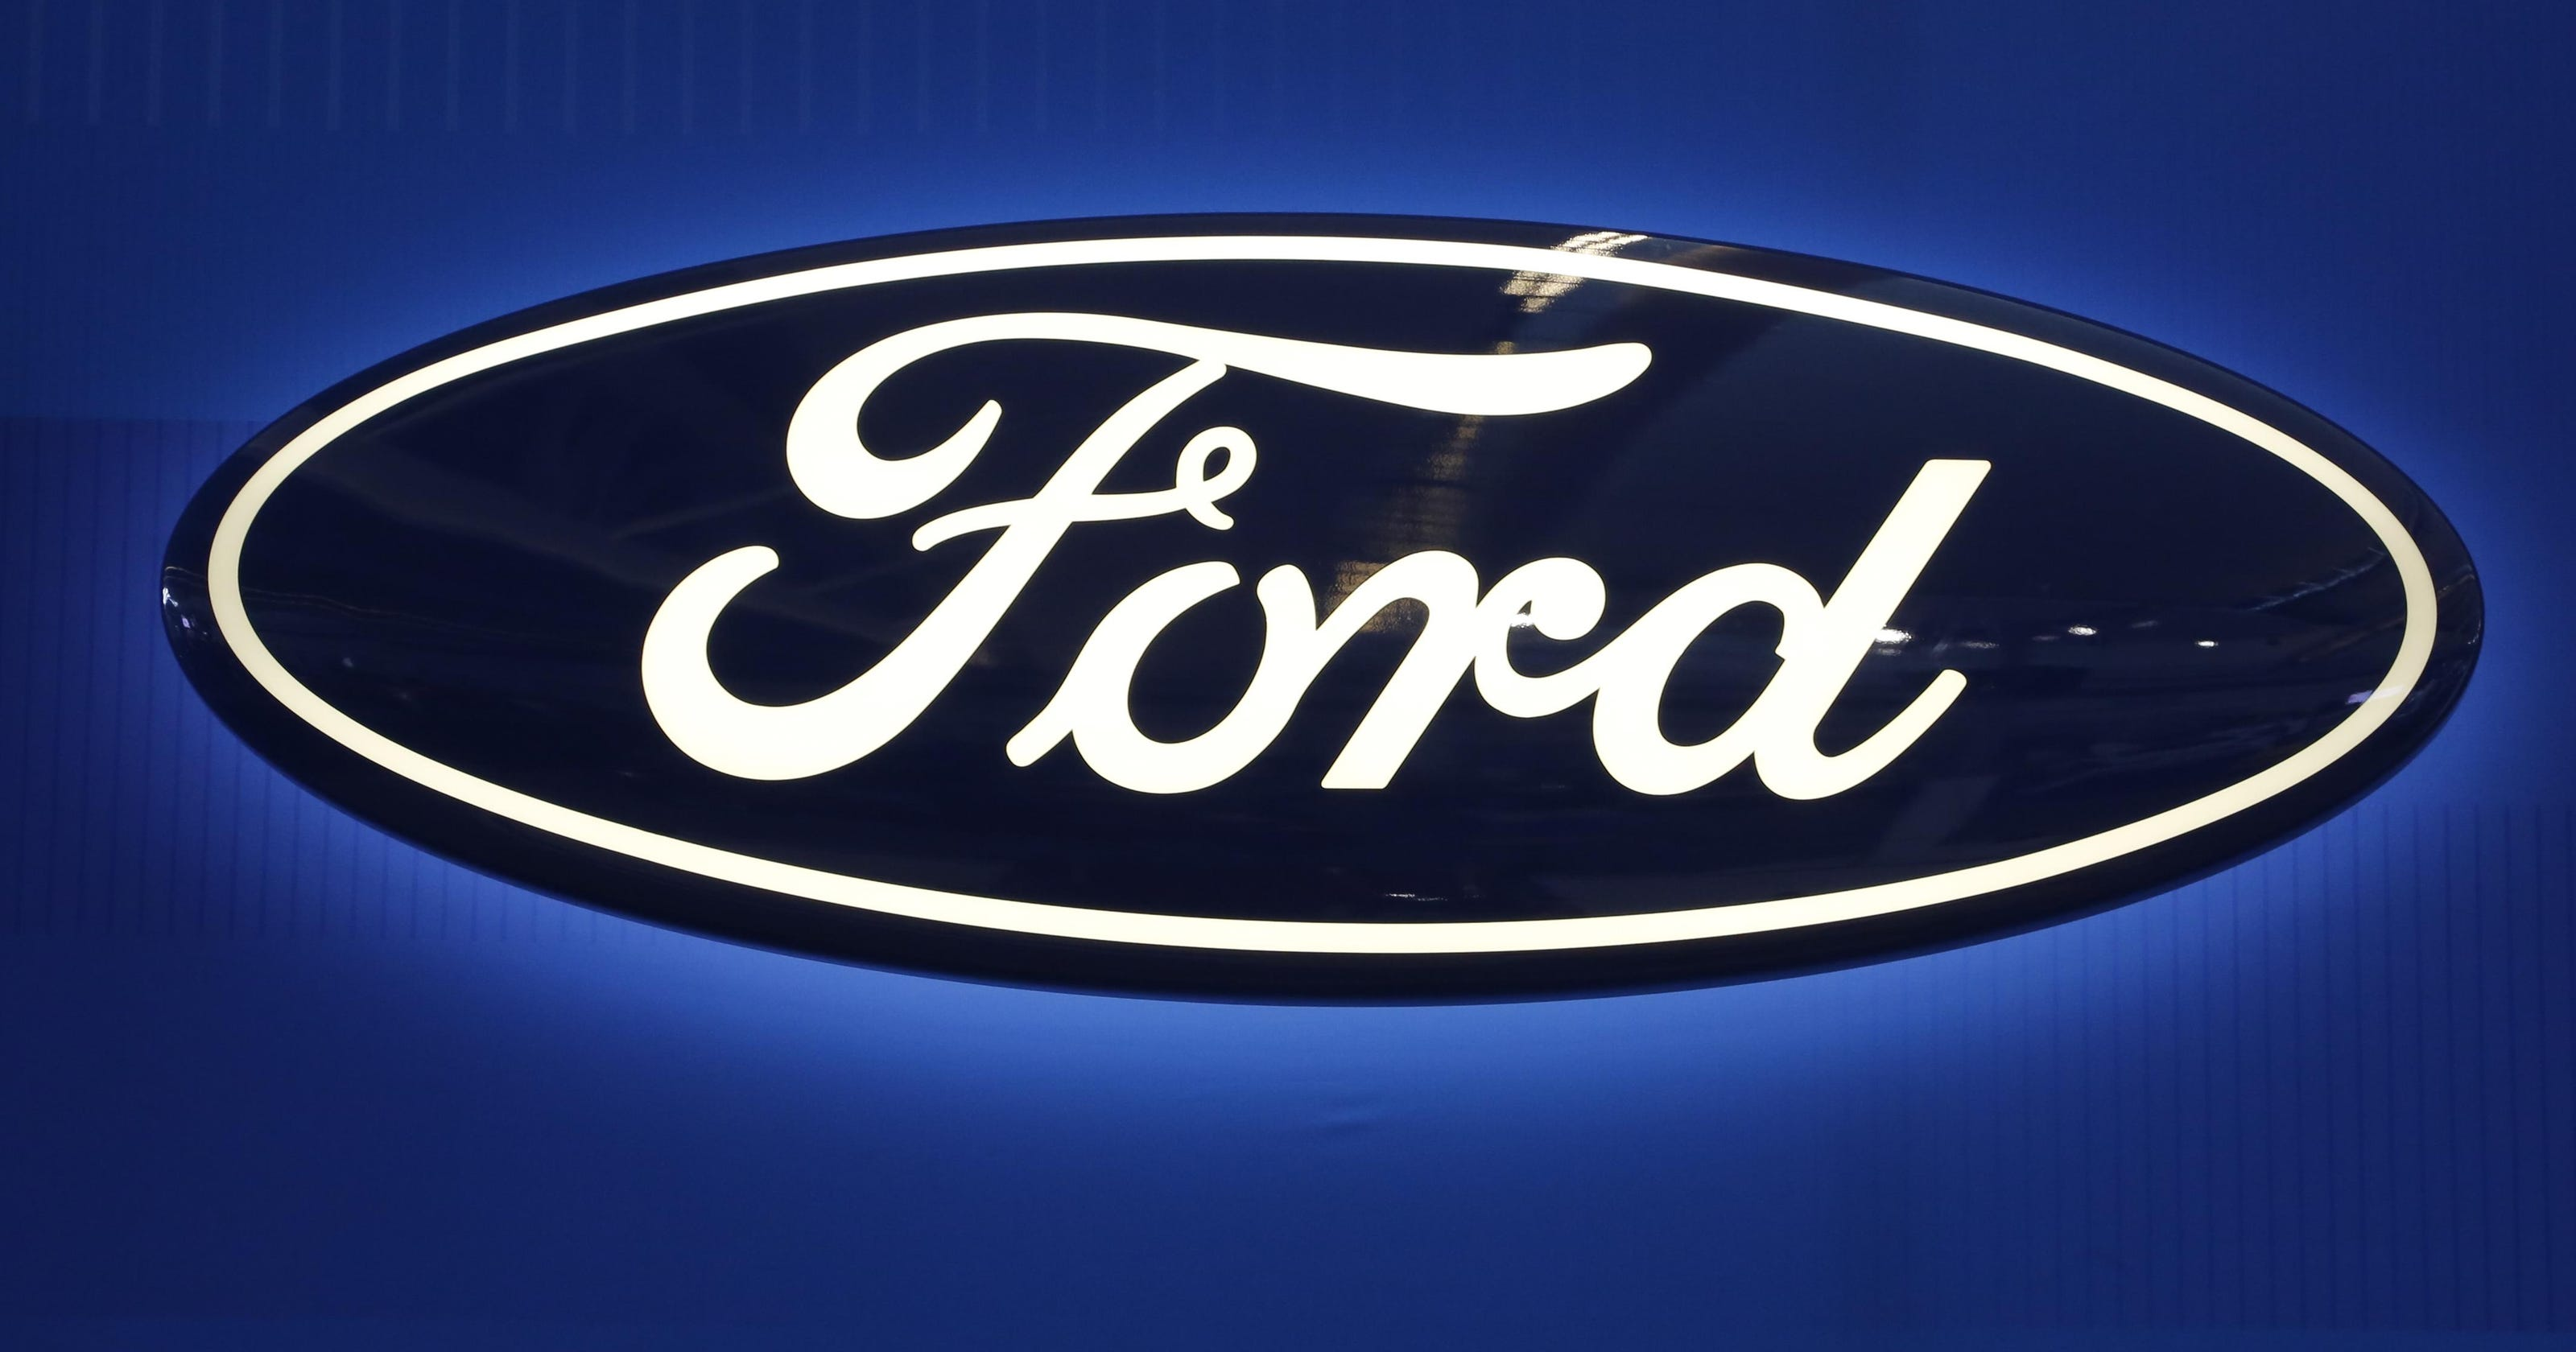 Ford lays off 130 workers at Ohio plant